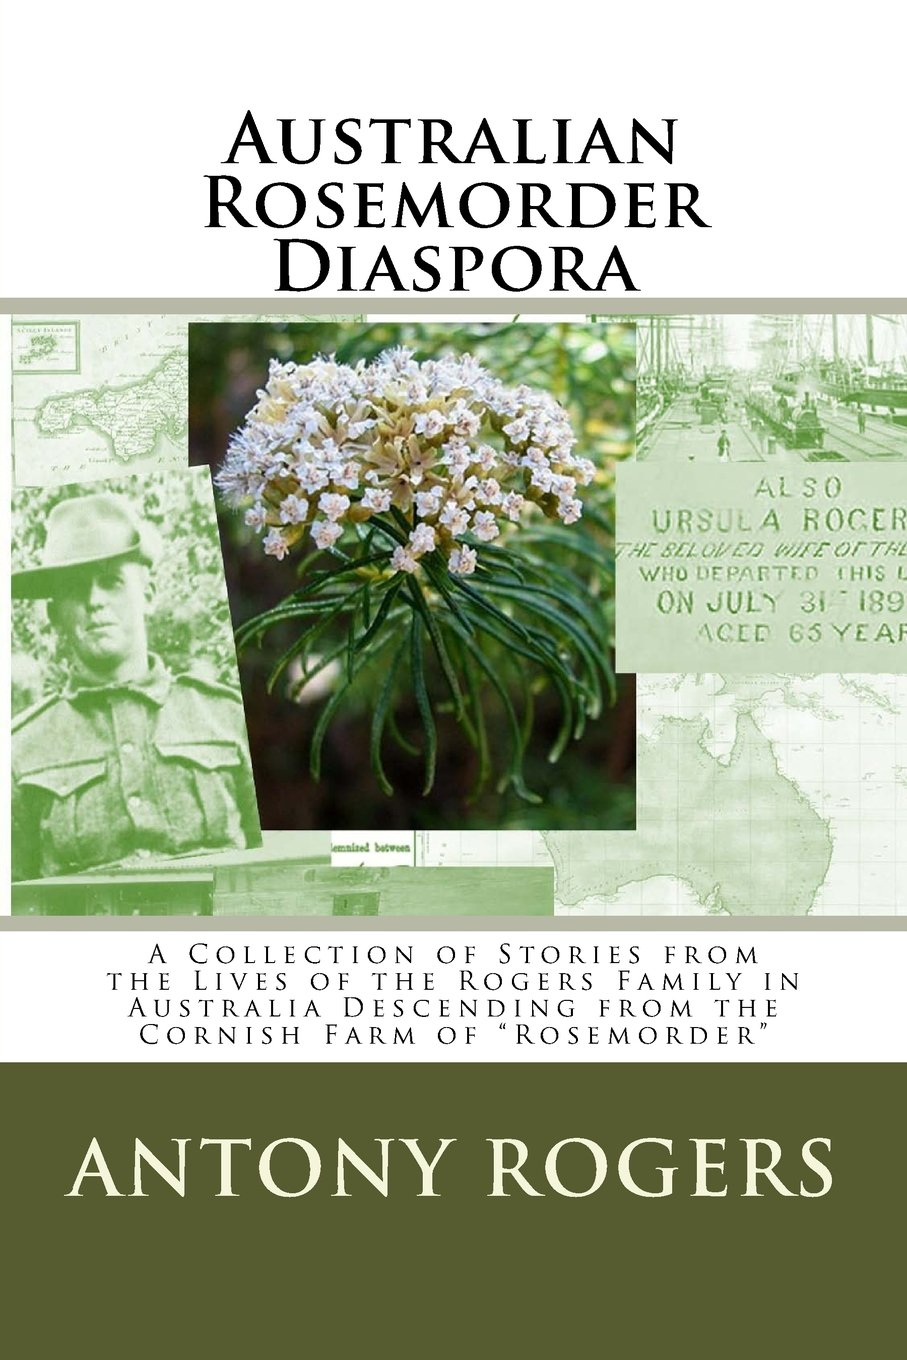 """Download Australian Rosemorder Diaspora: A Collection of Stories from the Lives of the Rogers Family in Australia Descending from the Cornish Farm of """"Rosemorder"""" ebook"""